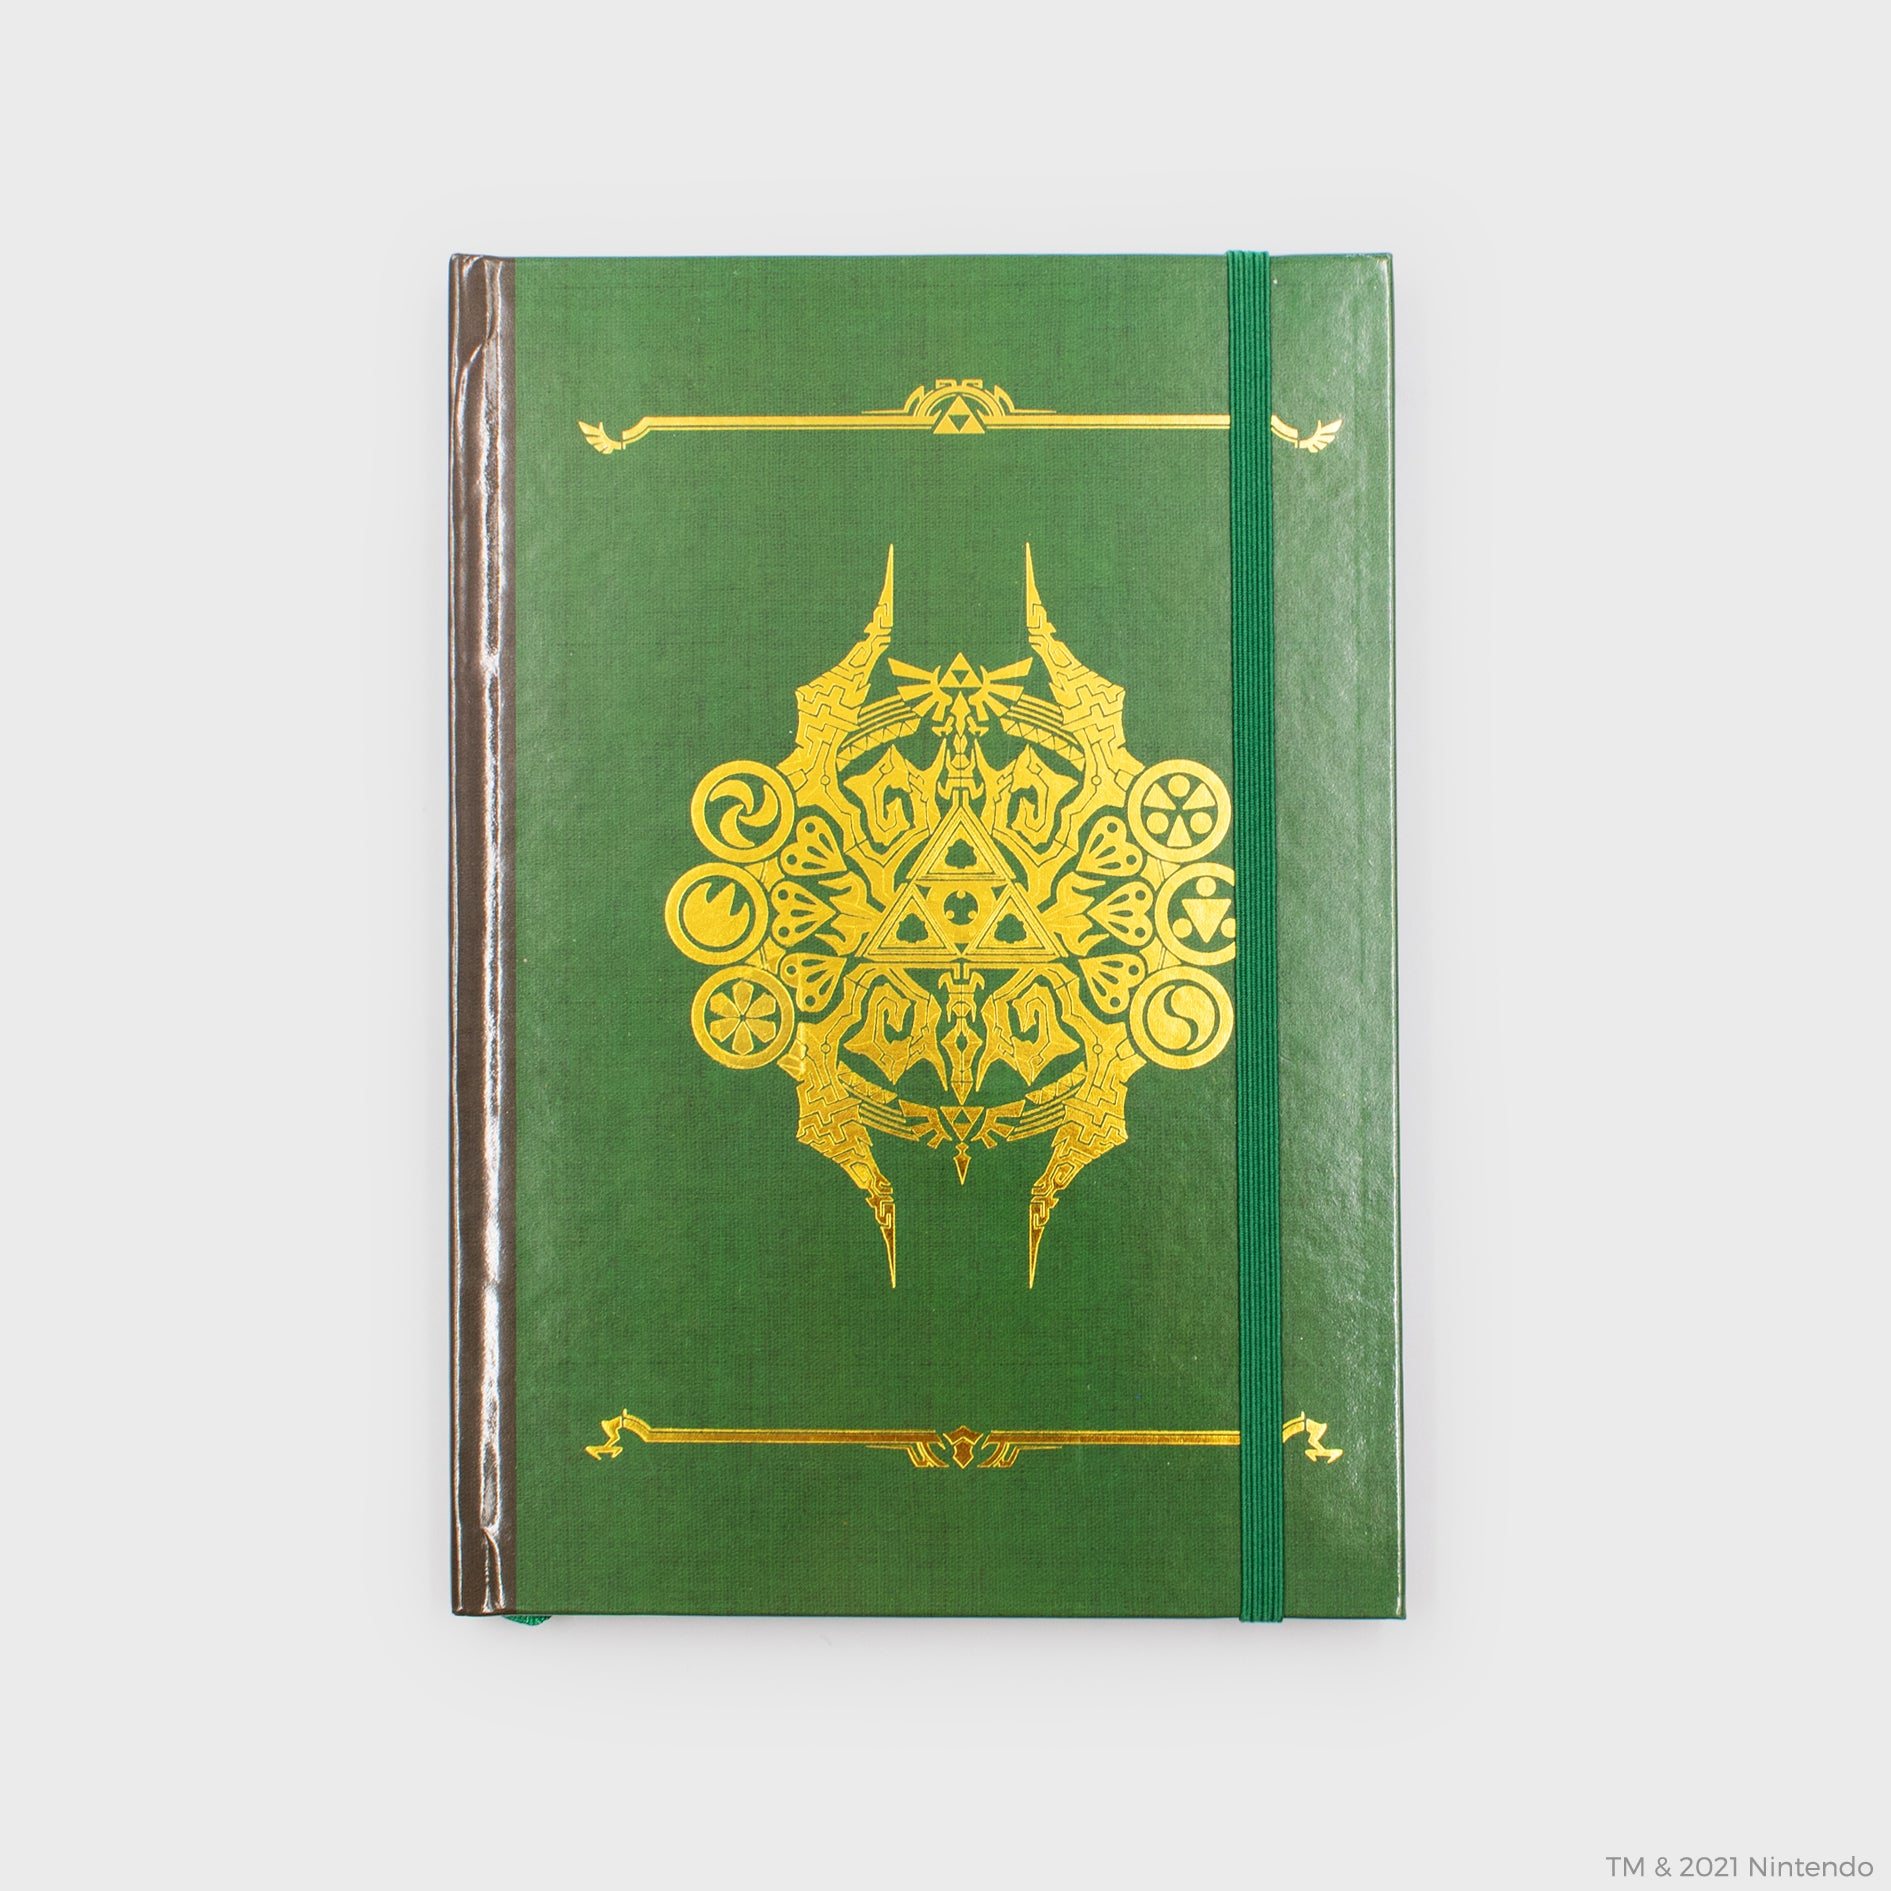 legend of zelda nintendo link loz collector's box journal notebook back to school culturefly